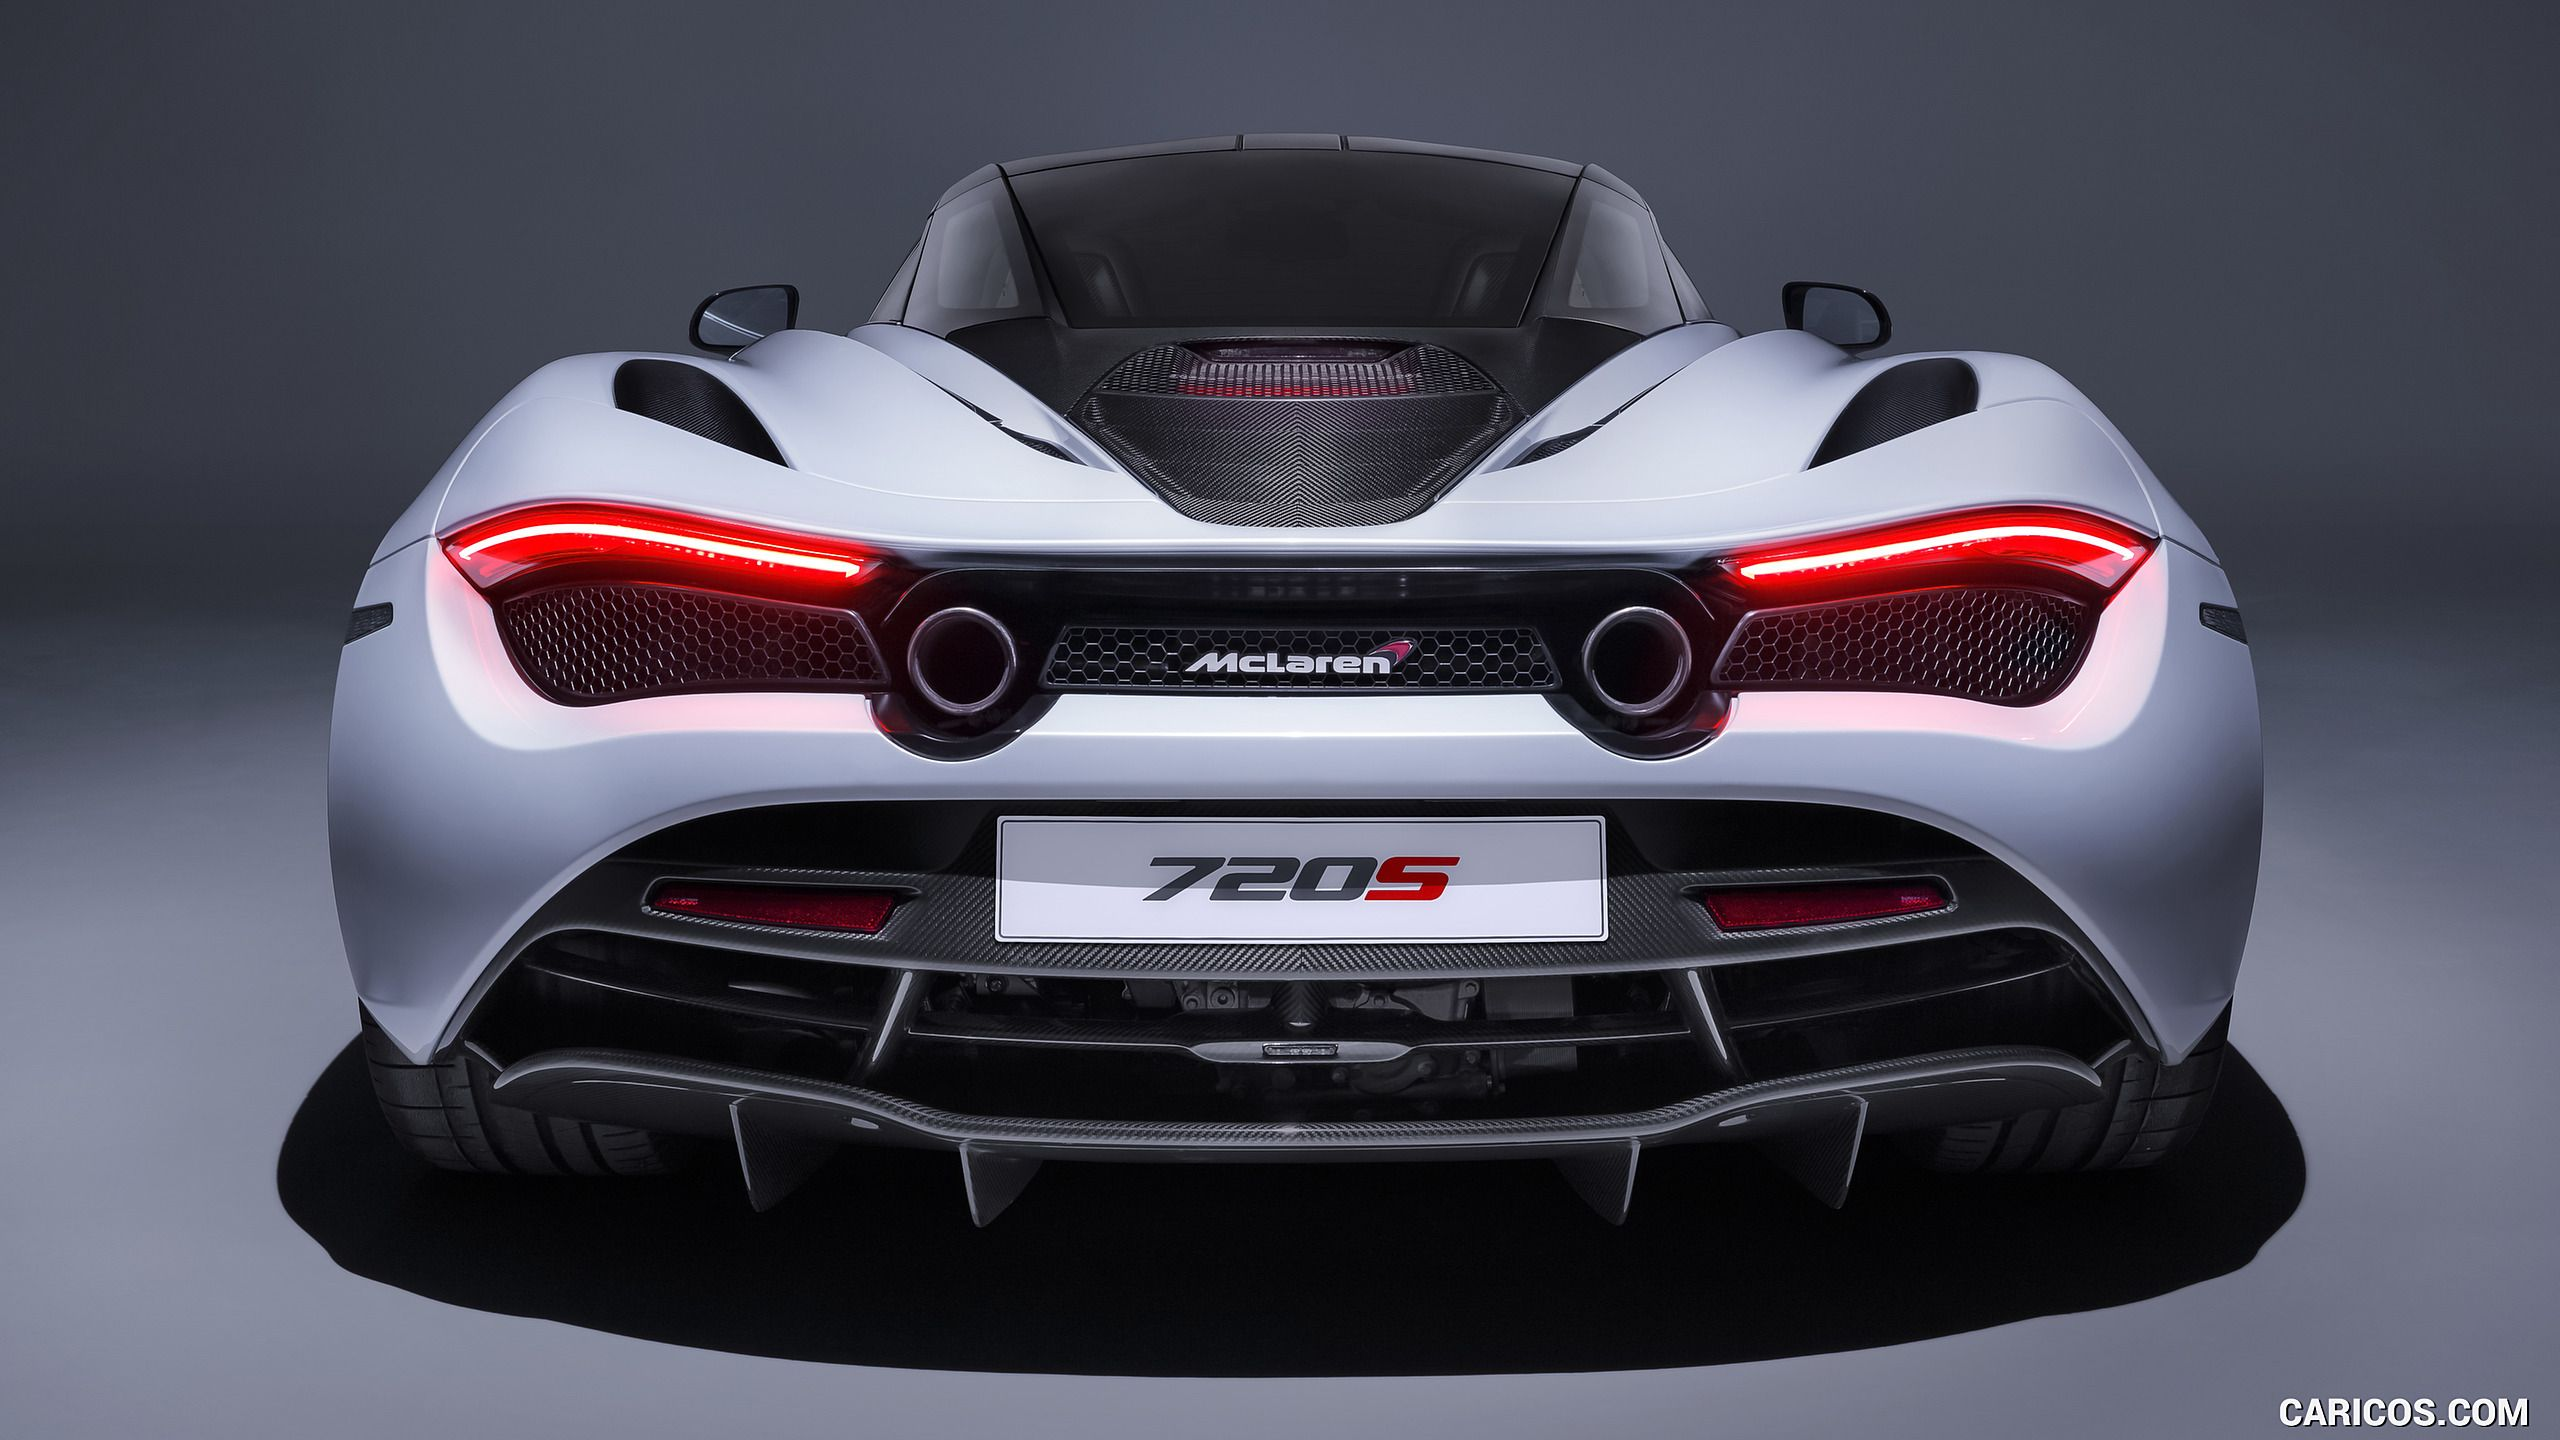 2018 mclaren cars. Exellent Cars 2018 McLaren 720S Wallpaper For Mclaren Cars